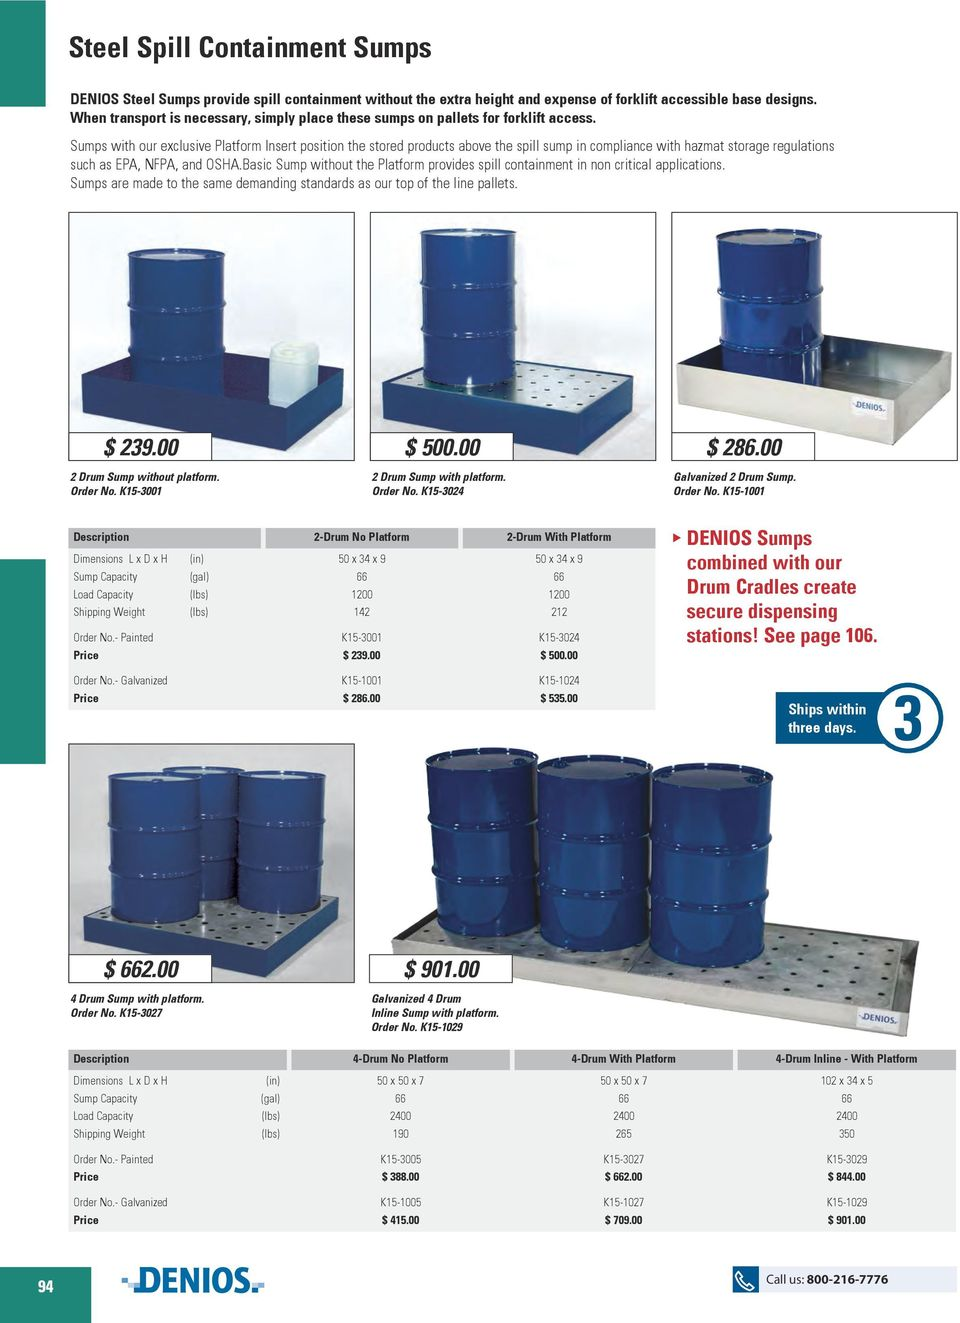 Sumps with our exclusive Platform Insert position the stored products above the spill sump in compliance with hazmat storage regulations such as EPA, NFPA, and OSHA.